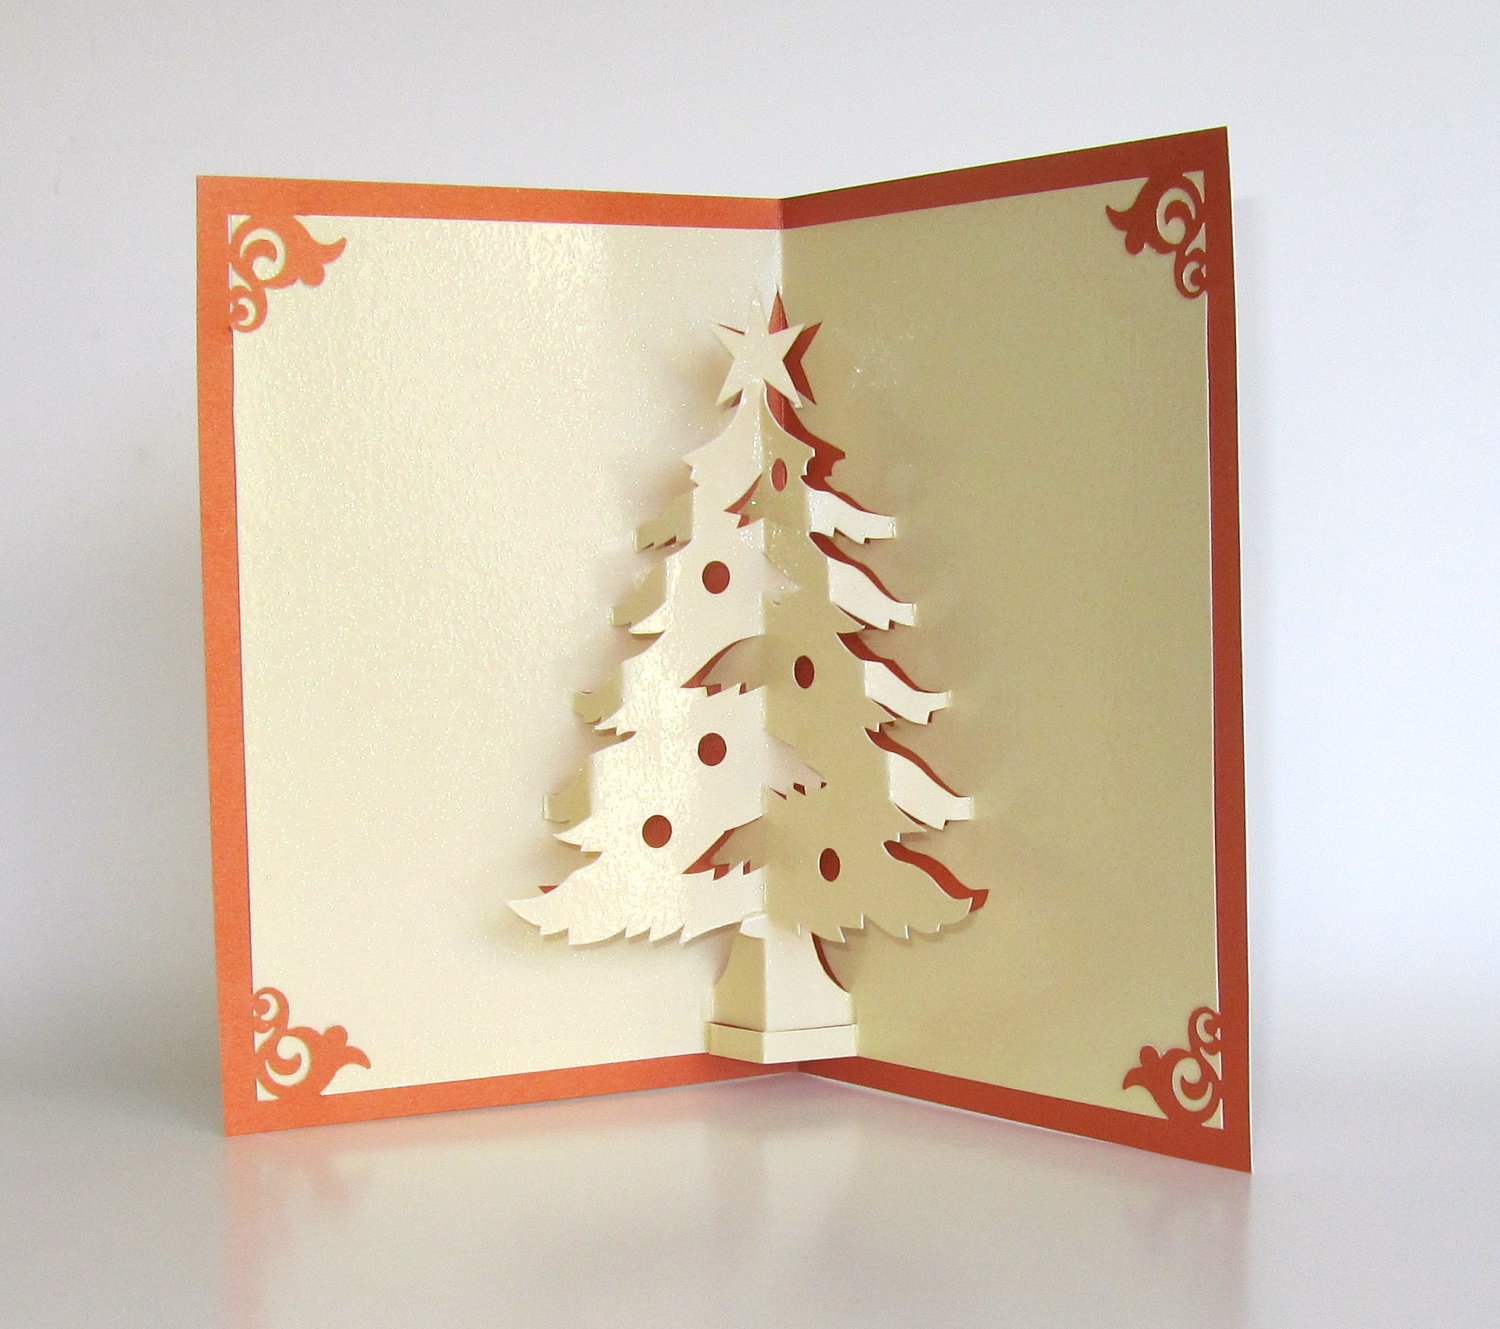 Pop Up Greeting Card Design